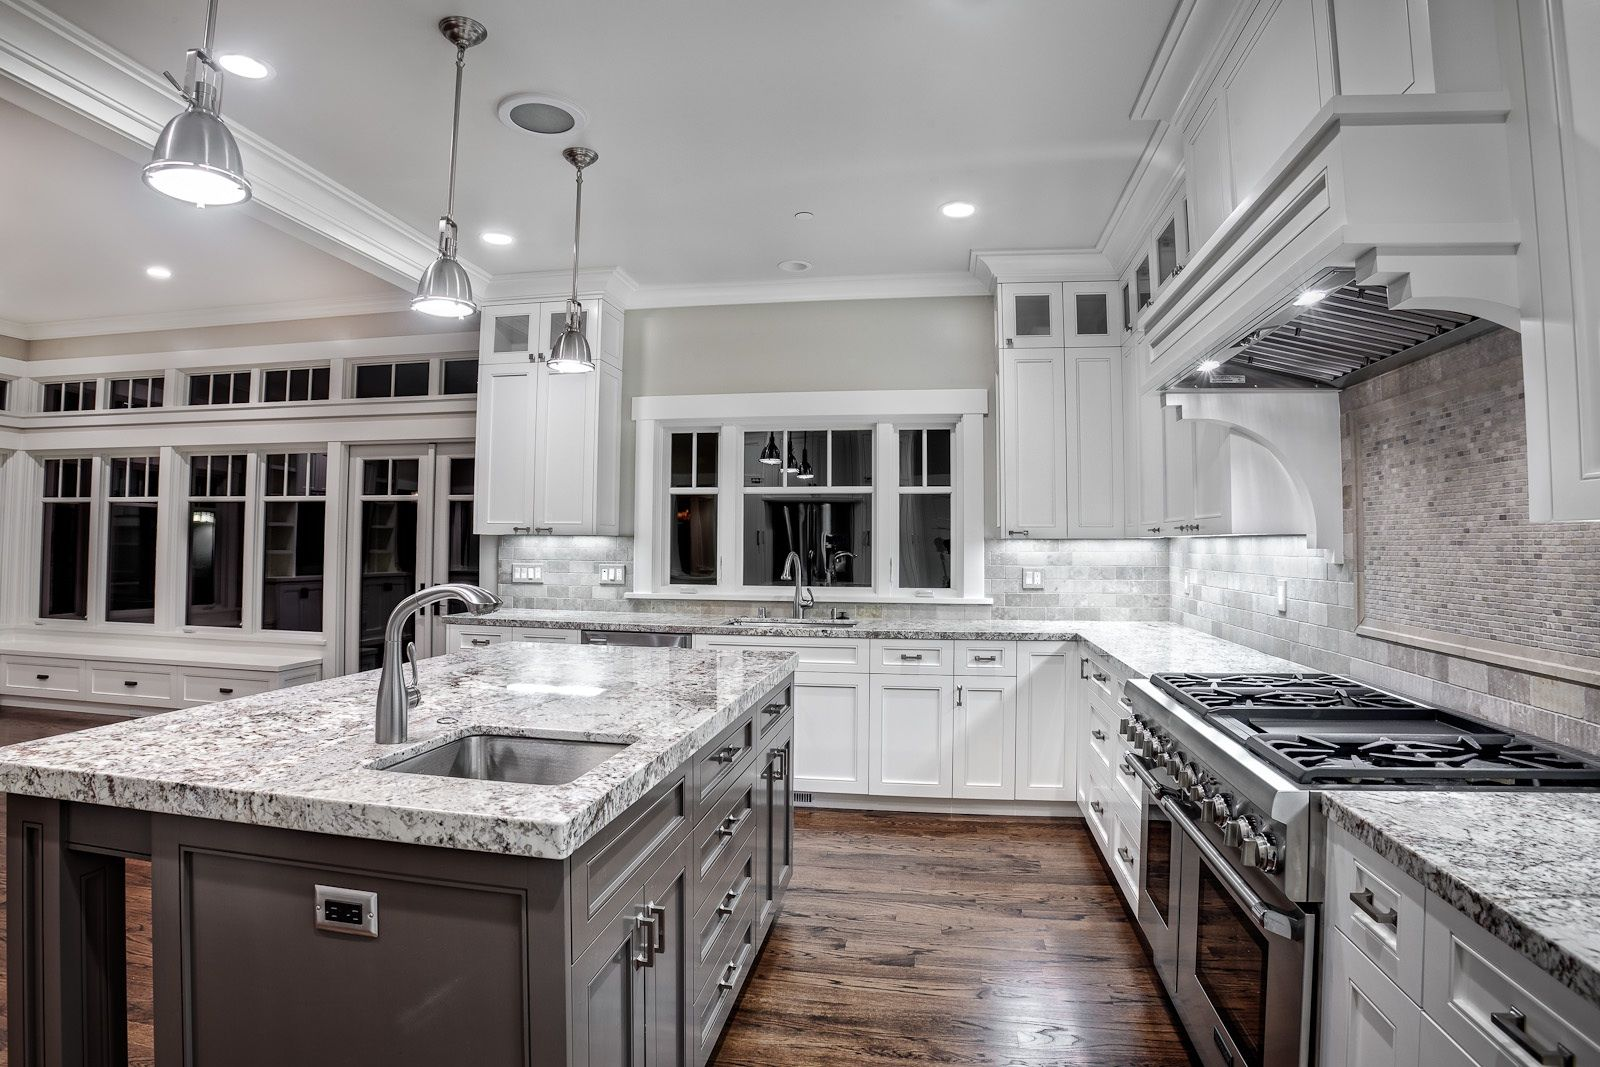 Alaska White Granite Dark Cabinets White Granite Countertops Kitchen Cabinet Design Kitchen Cabinets Makeover